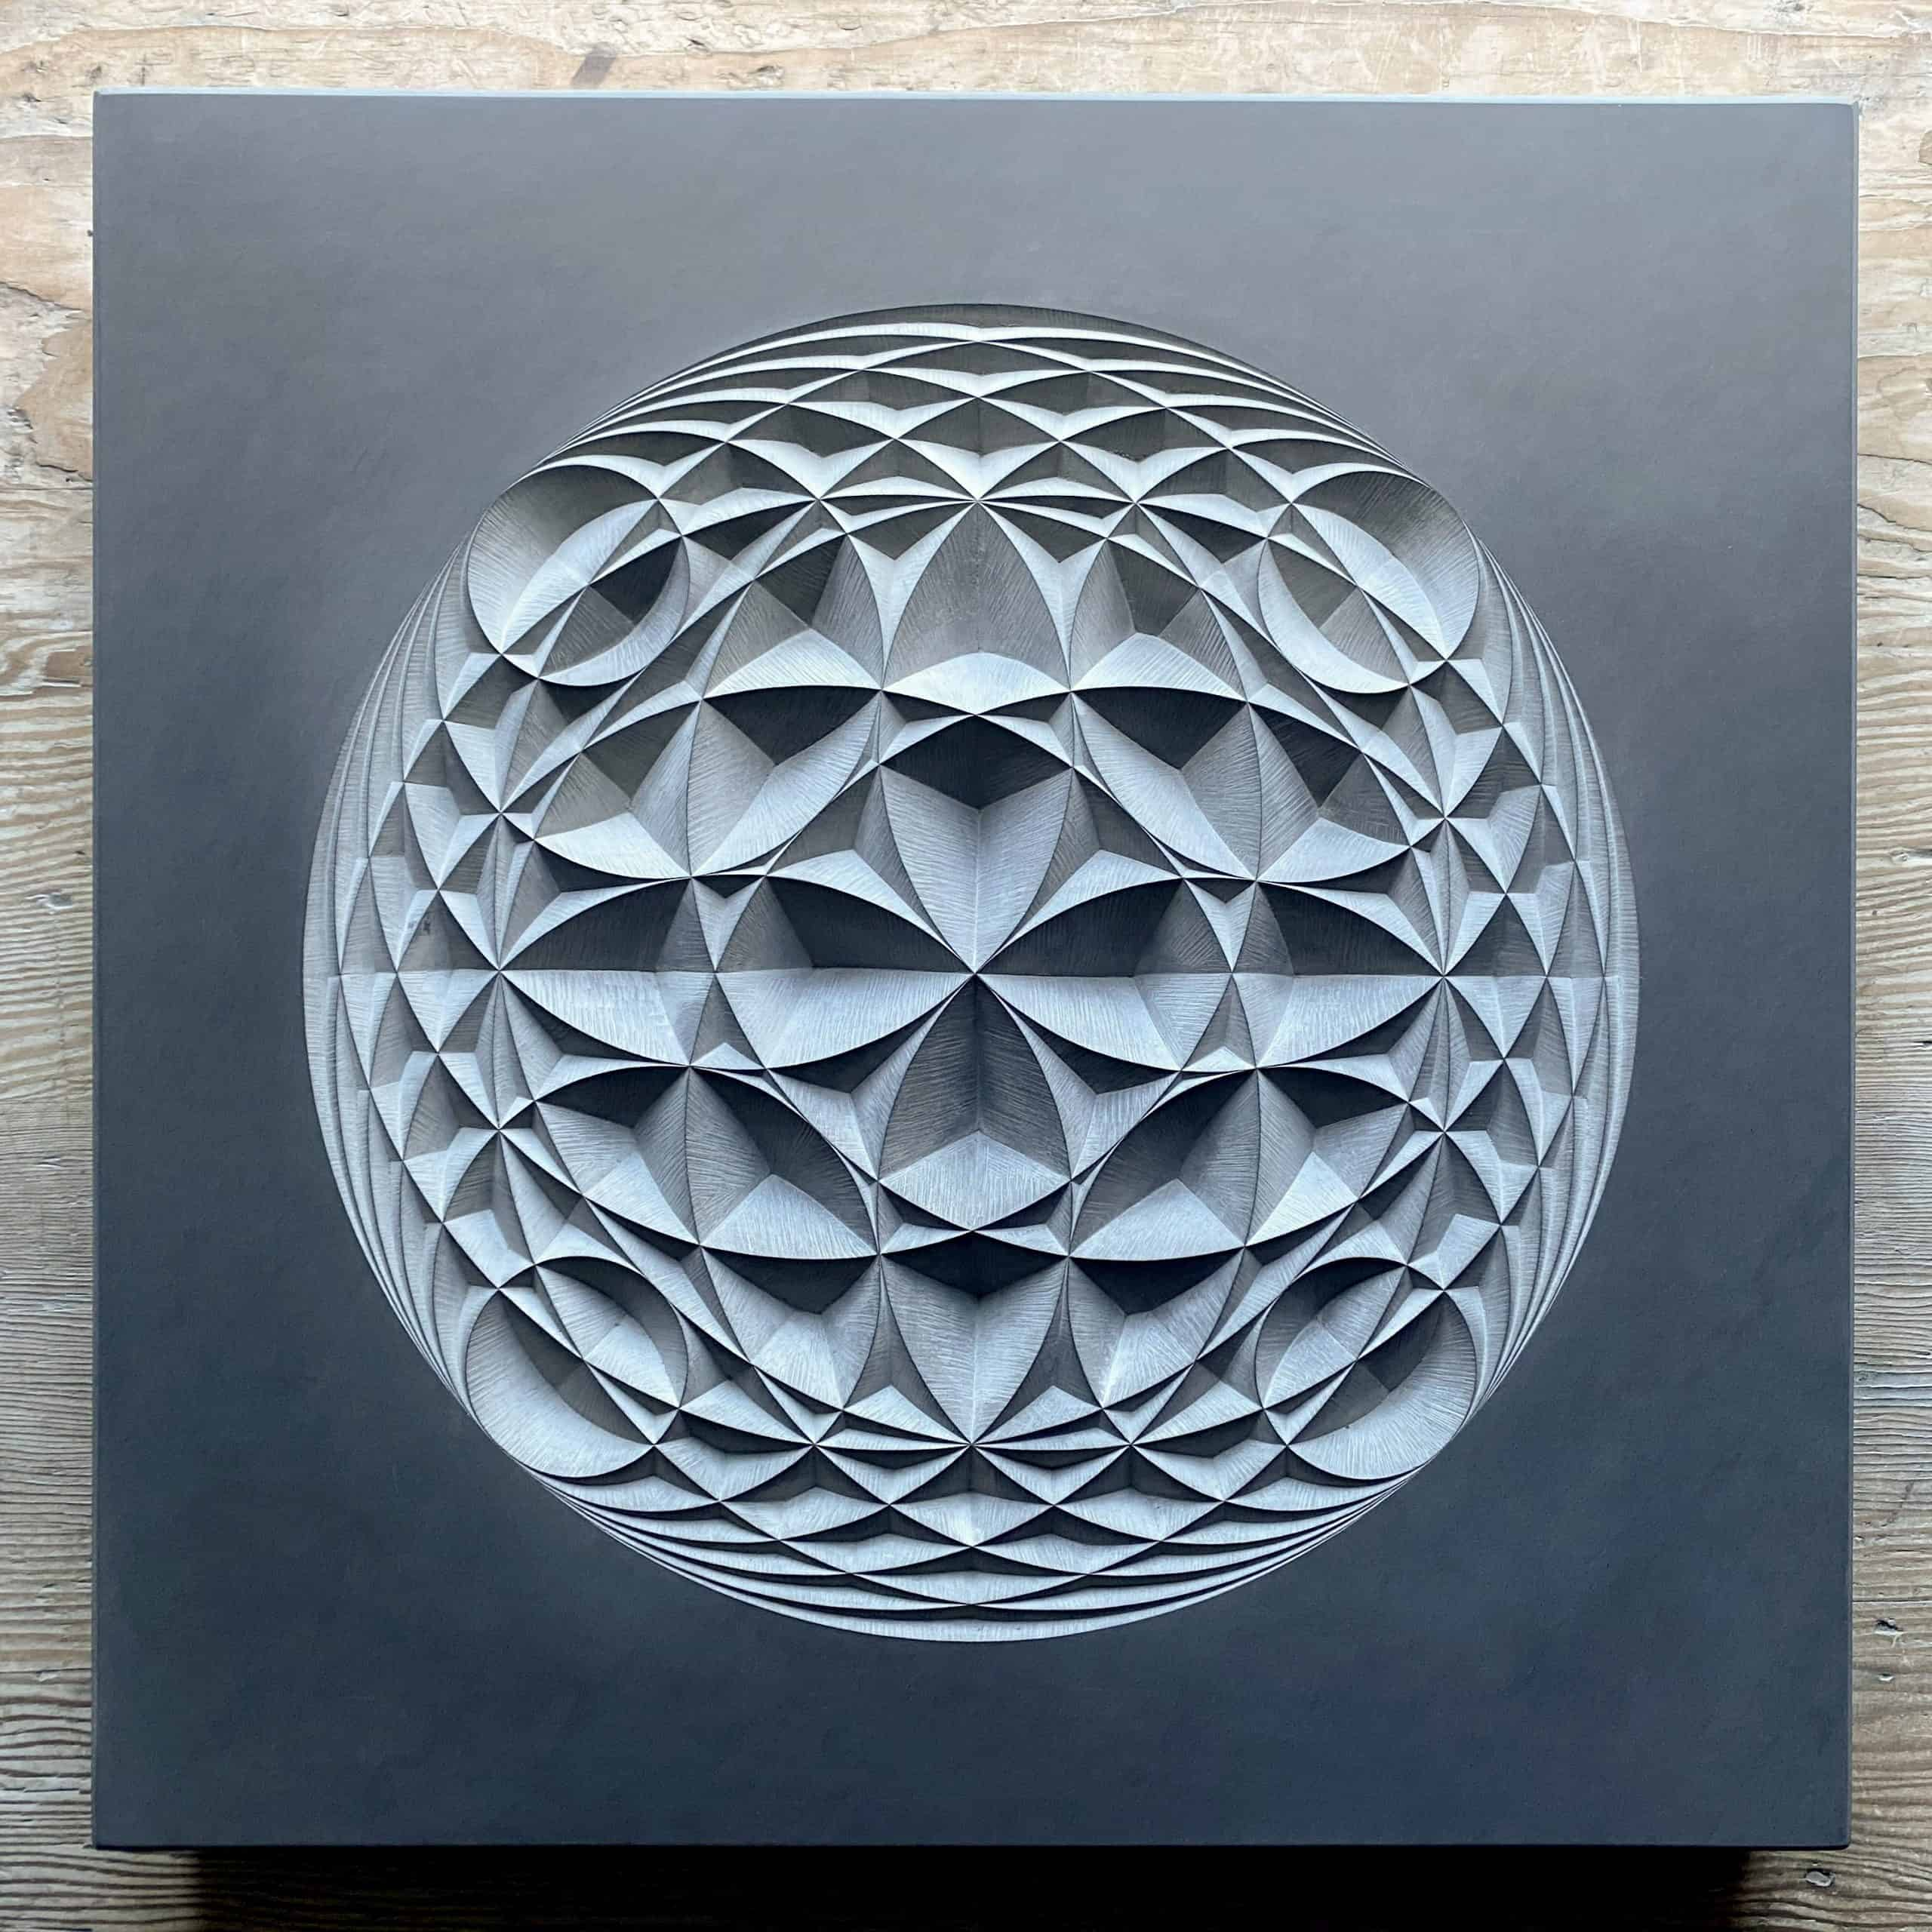 Overlapping circular geometric pattern carving into dark grey slate